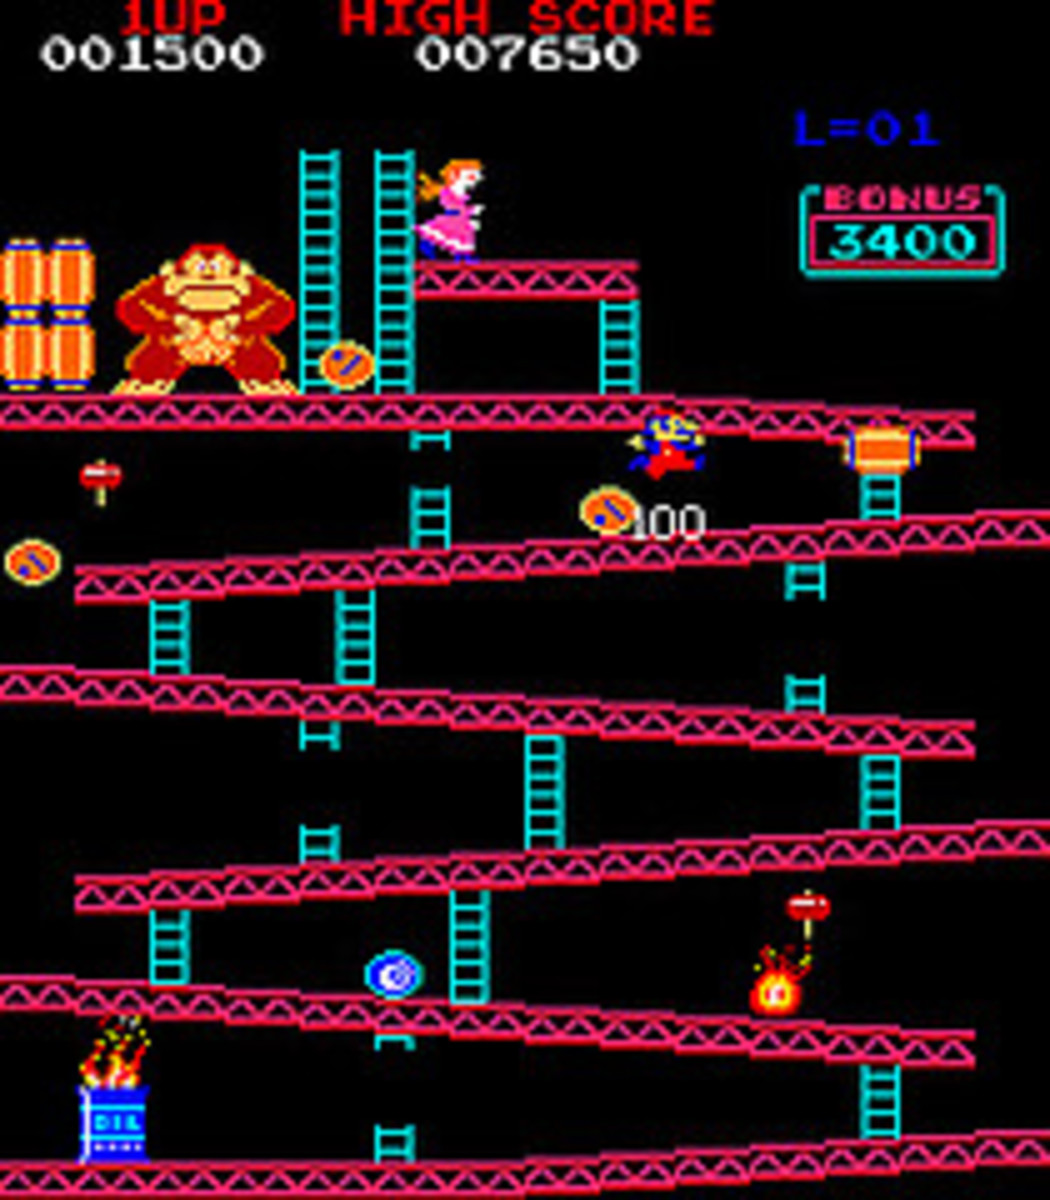 Donkey Kong Level 1